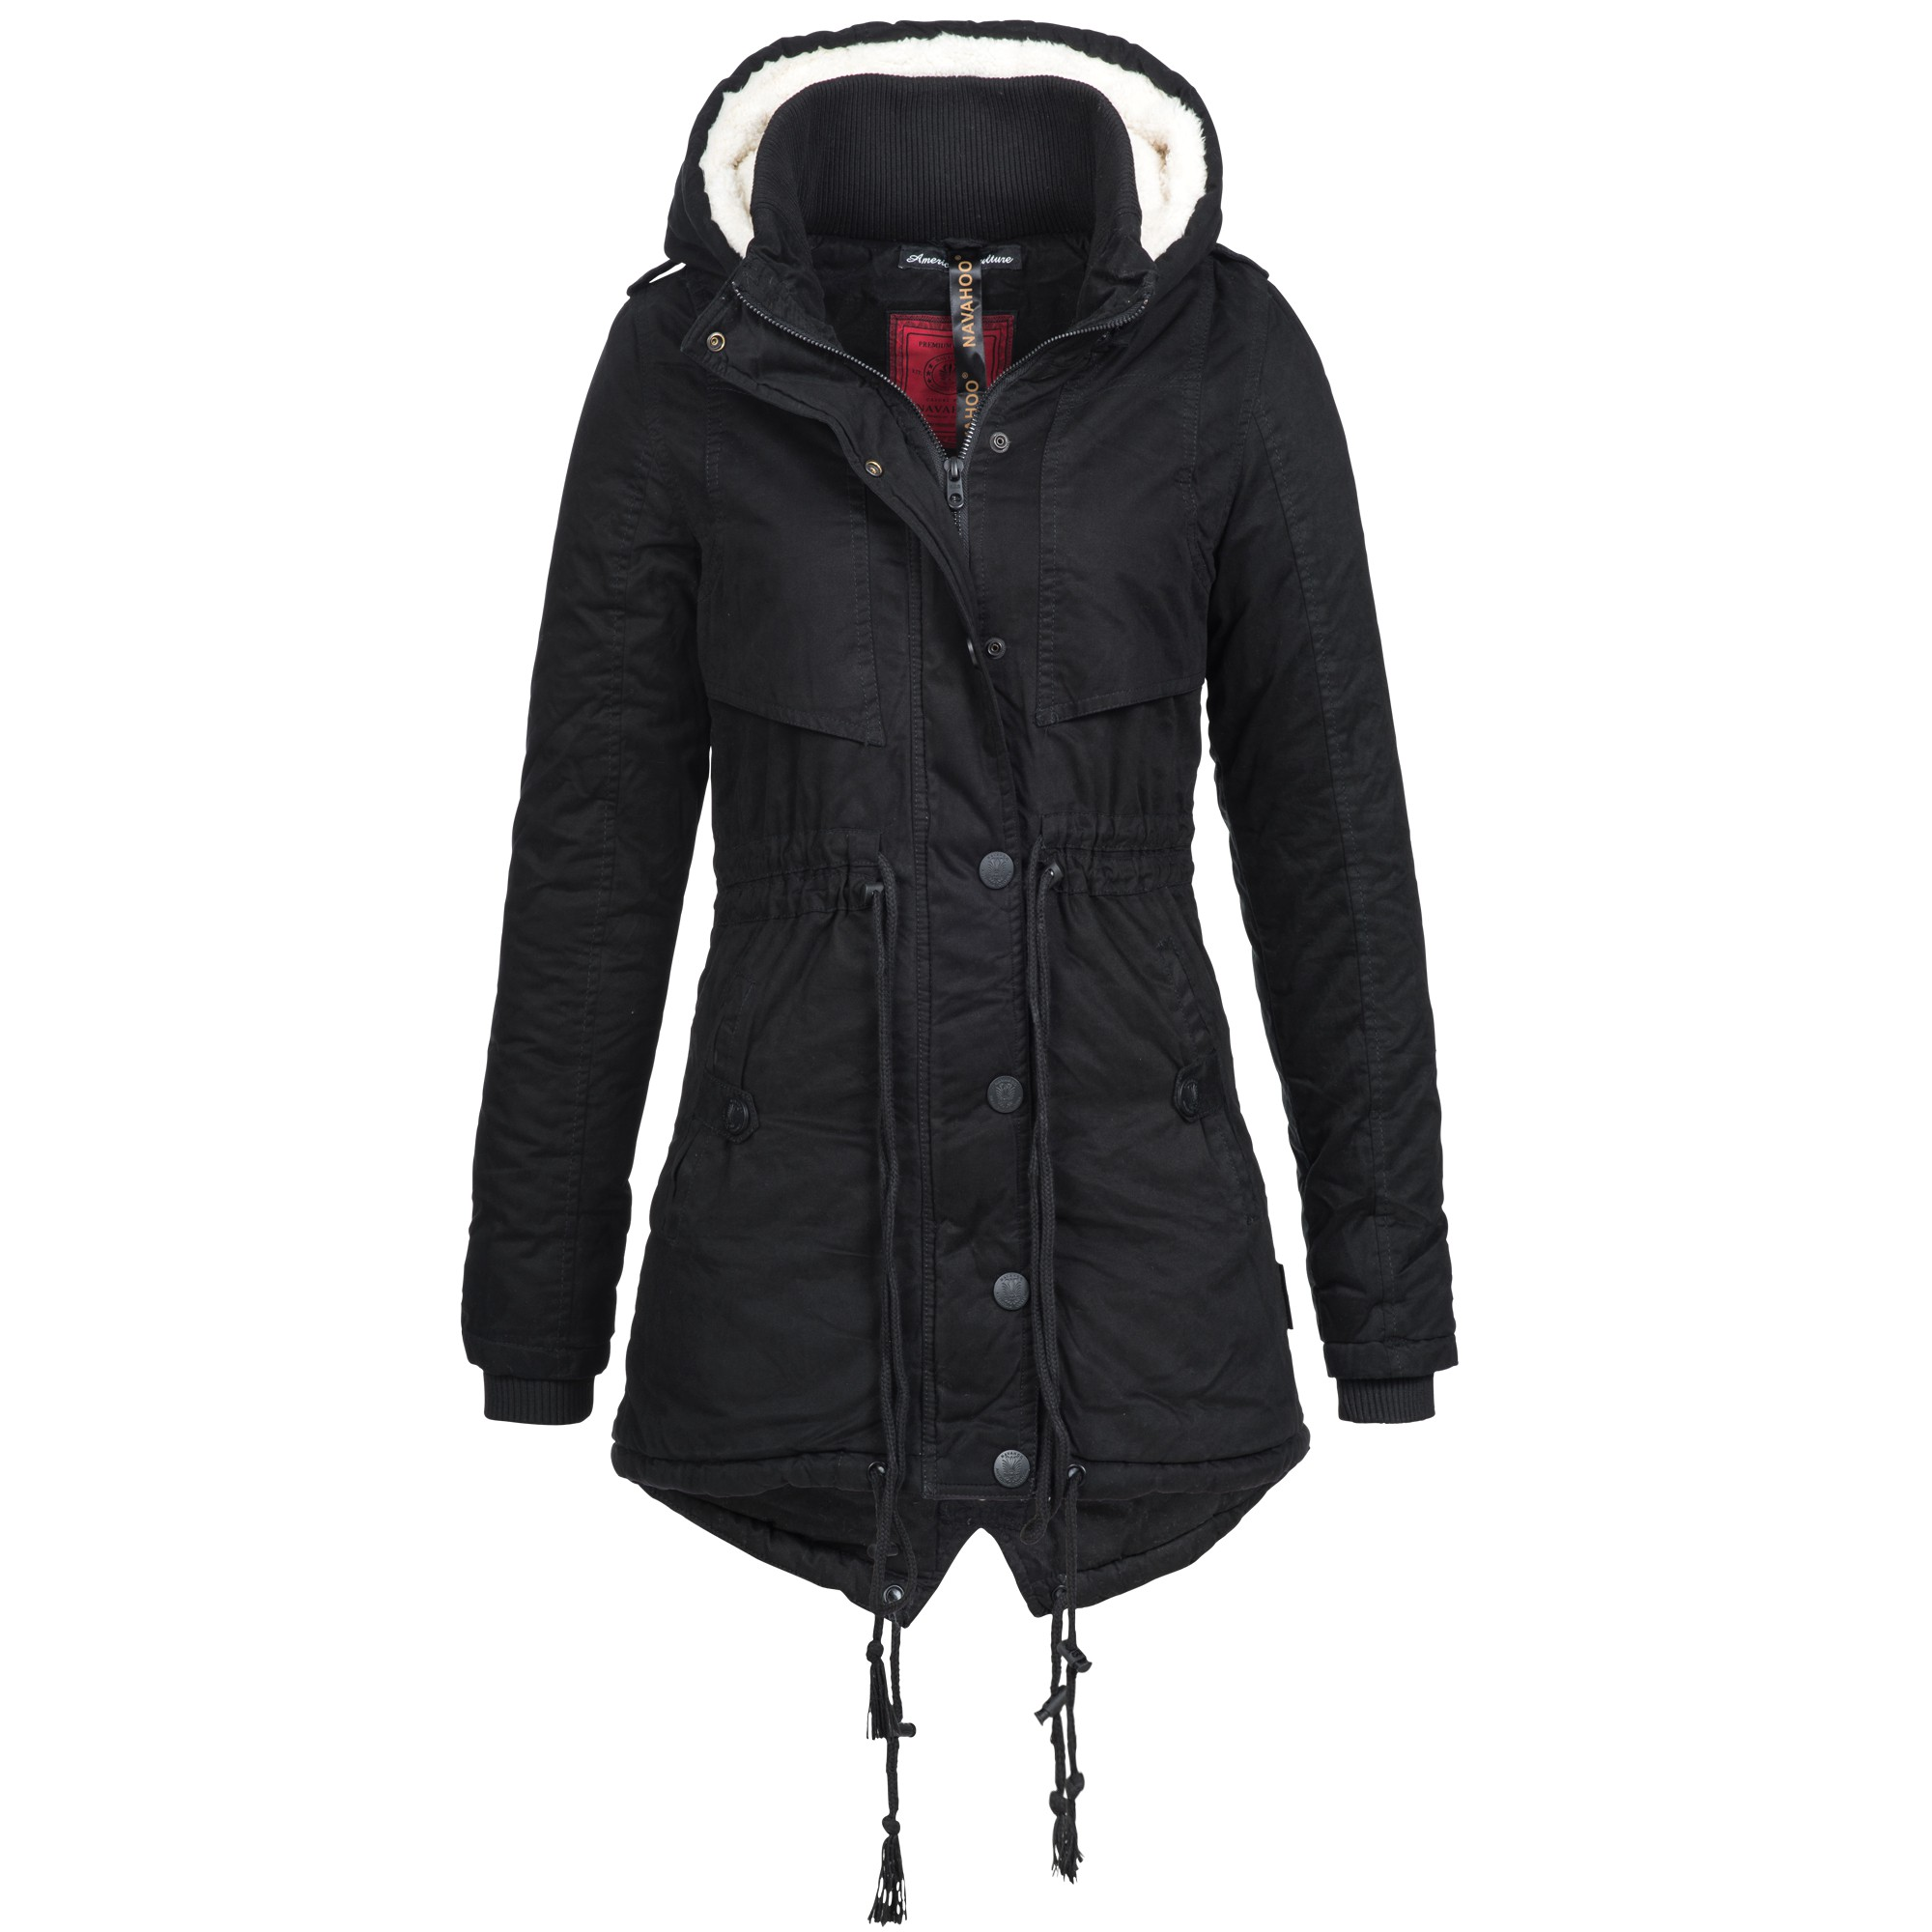 navahoo valentina damen jacke parka mantel winterjacke. Black Bedroom Furniture Sets. Home Design Ideas